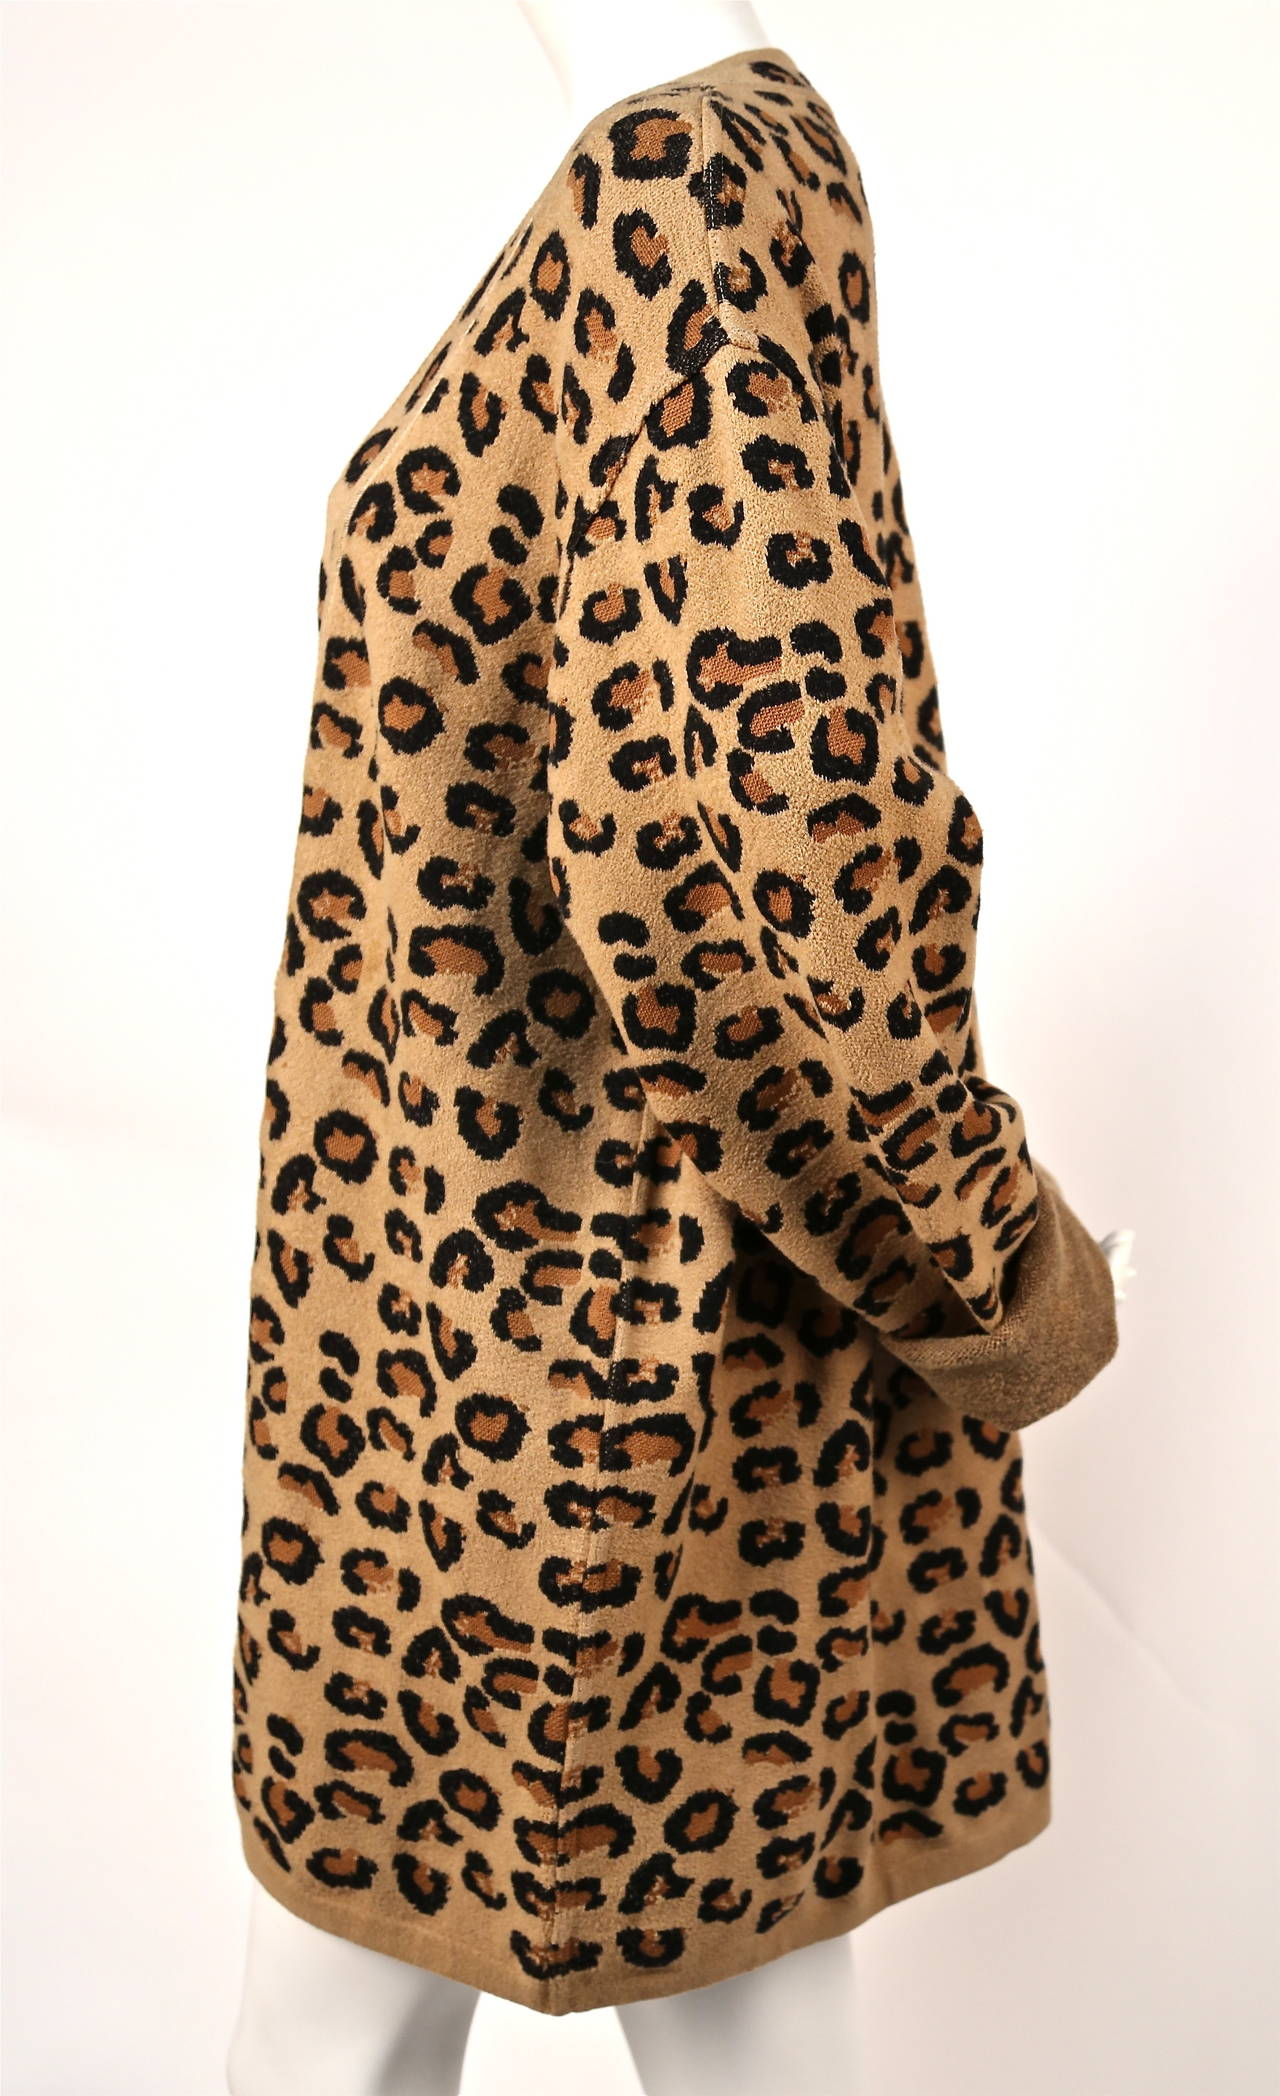 1991 AZZEDINE ALAIA oversized leopard V-neck dress 2